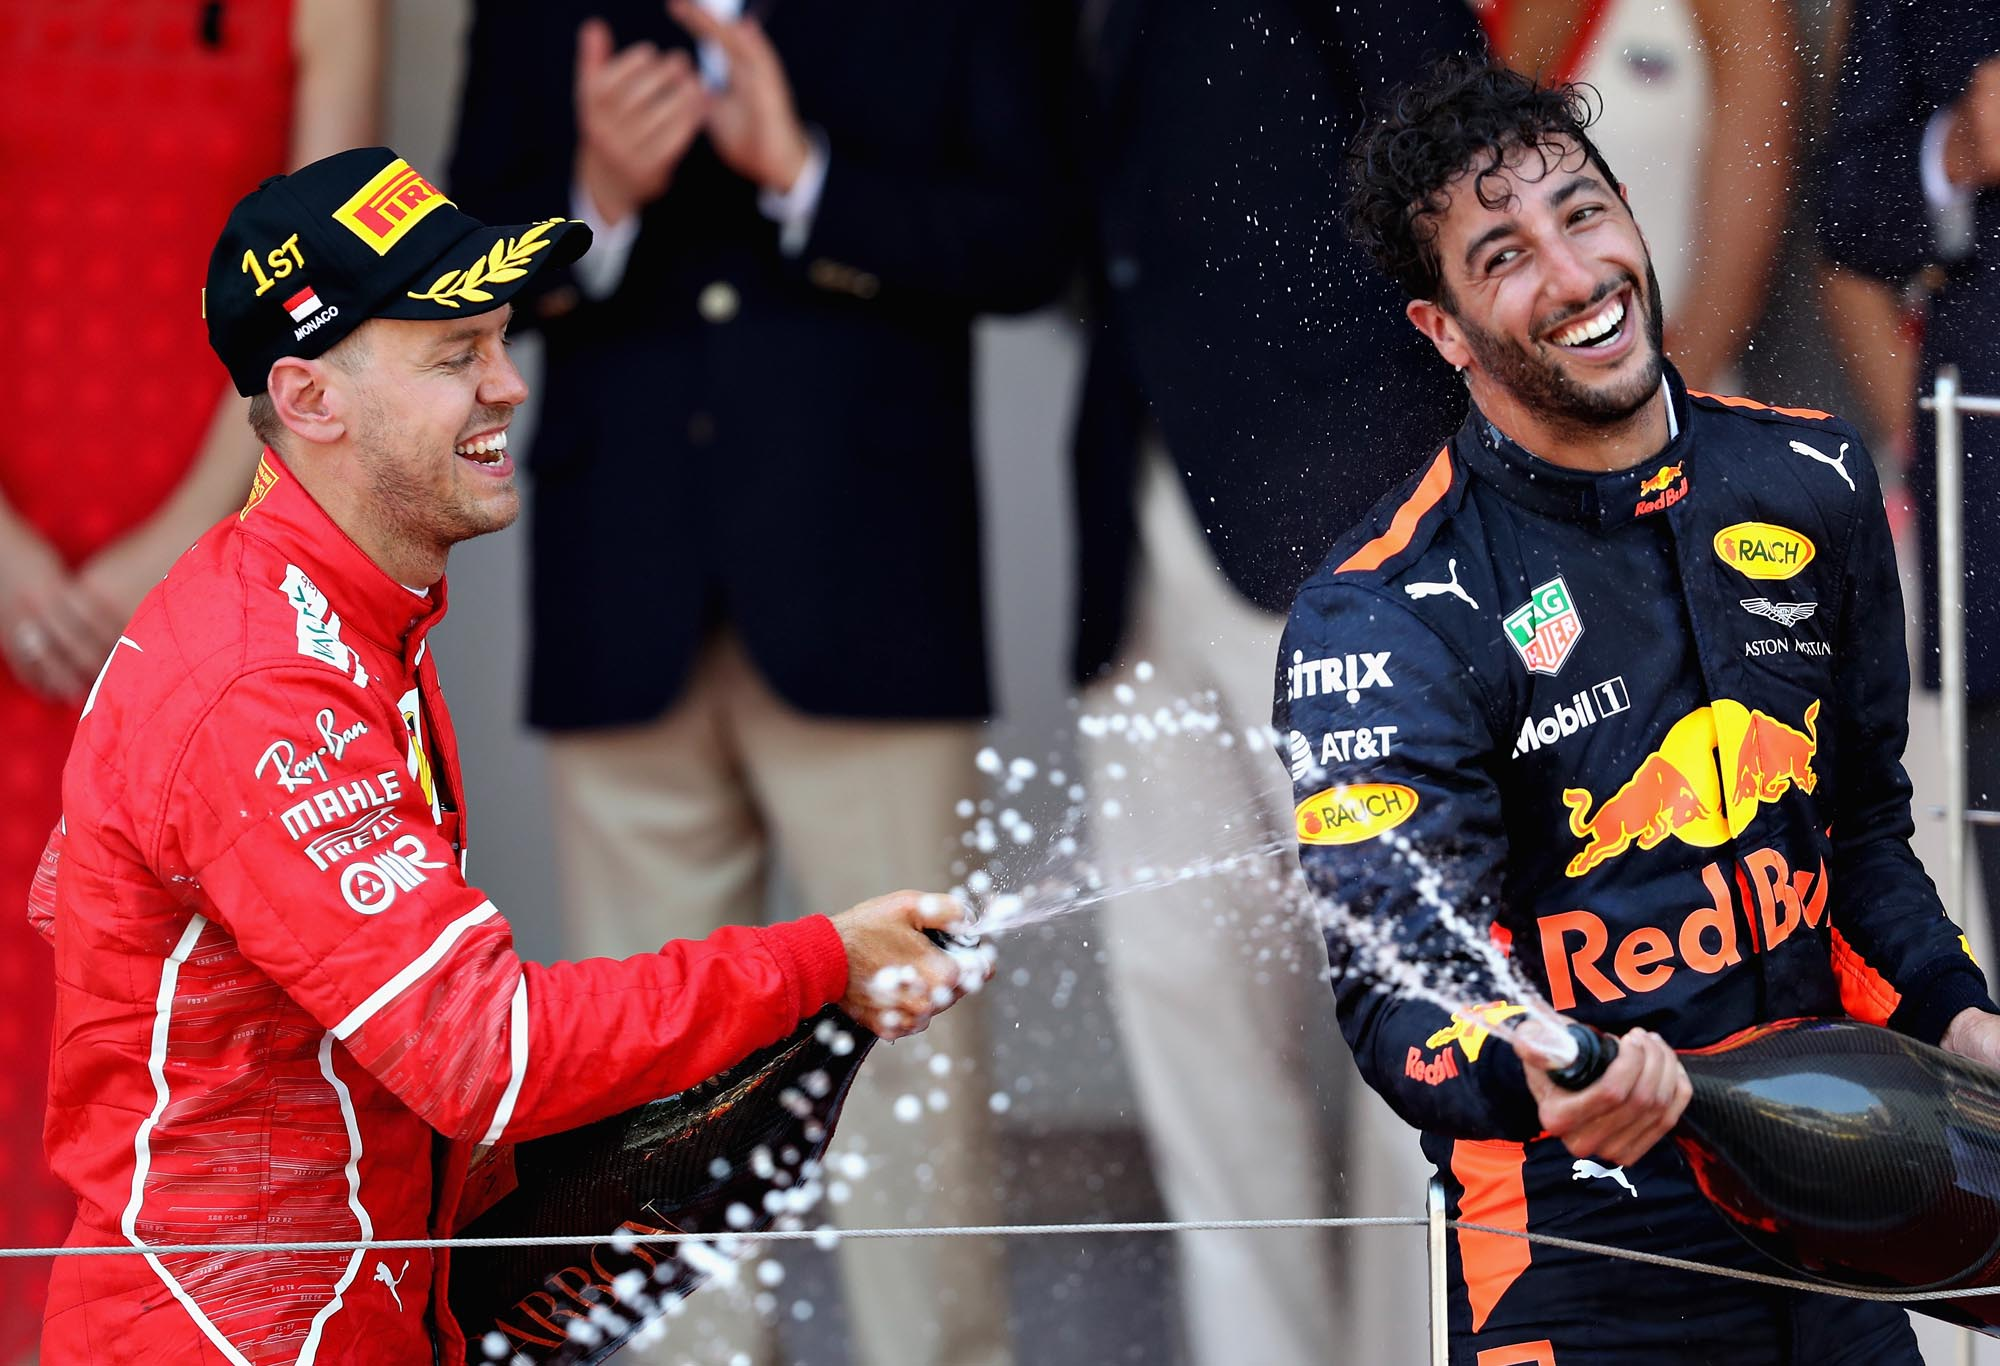 Daniel Ricciardo and Sebastian Vettel celebrate on the 2017 Monaco Grand Prix podium. (Mark Thompson/Getty Images)